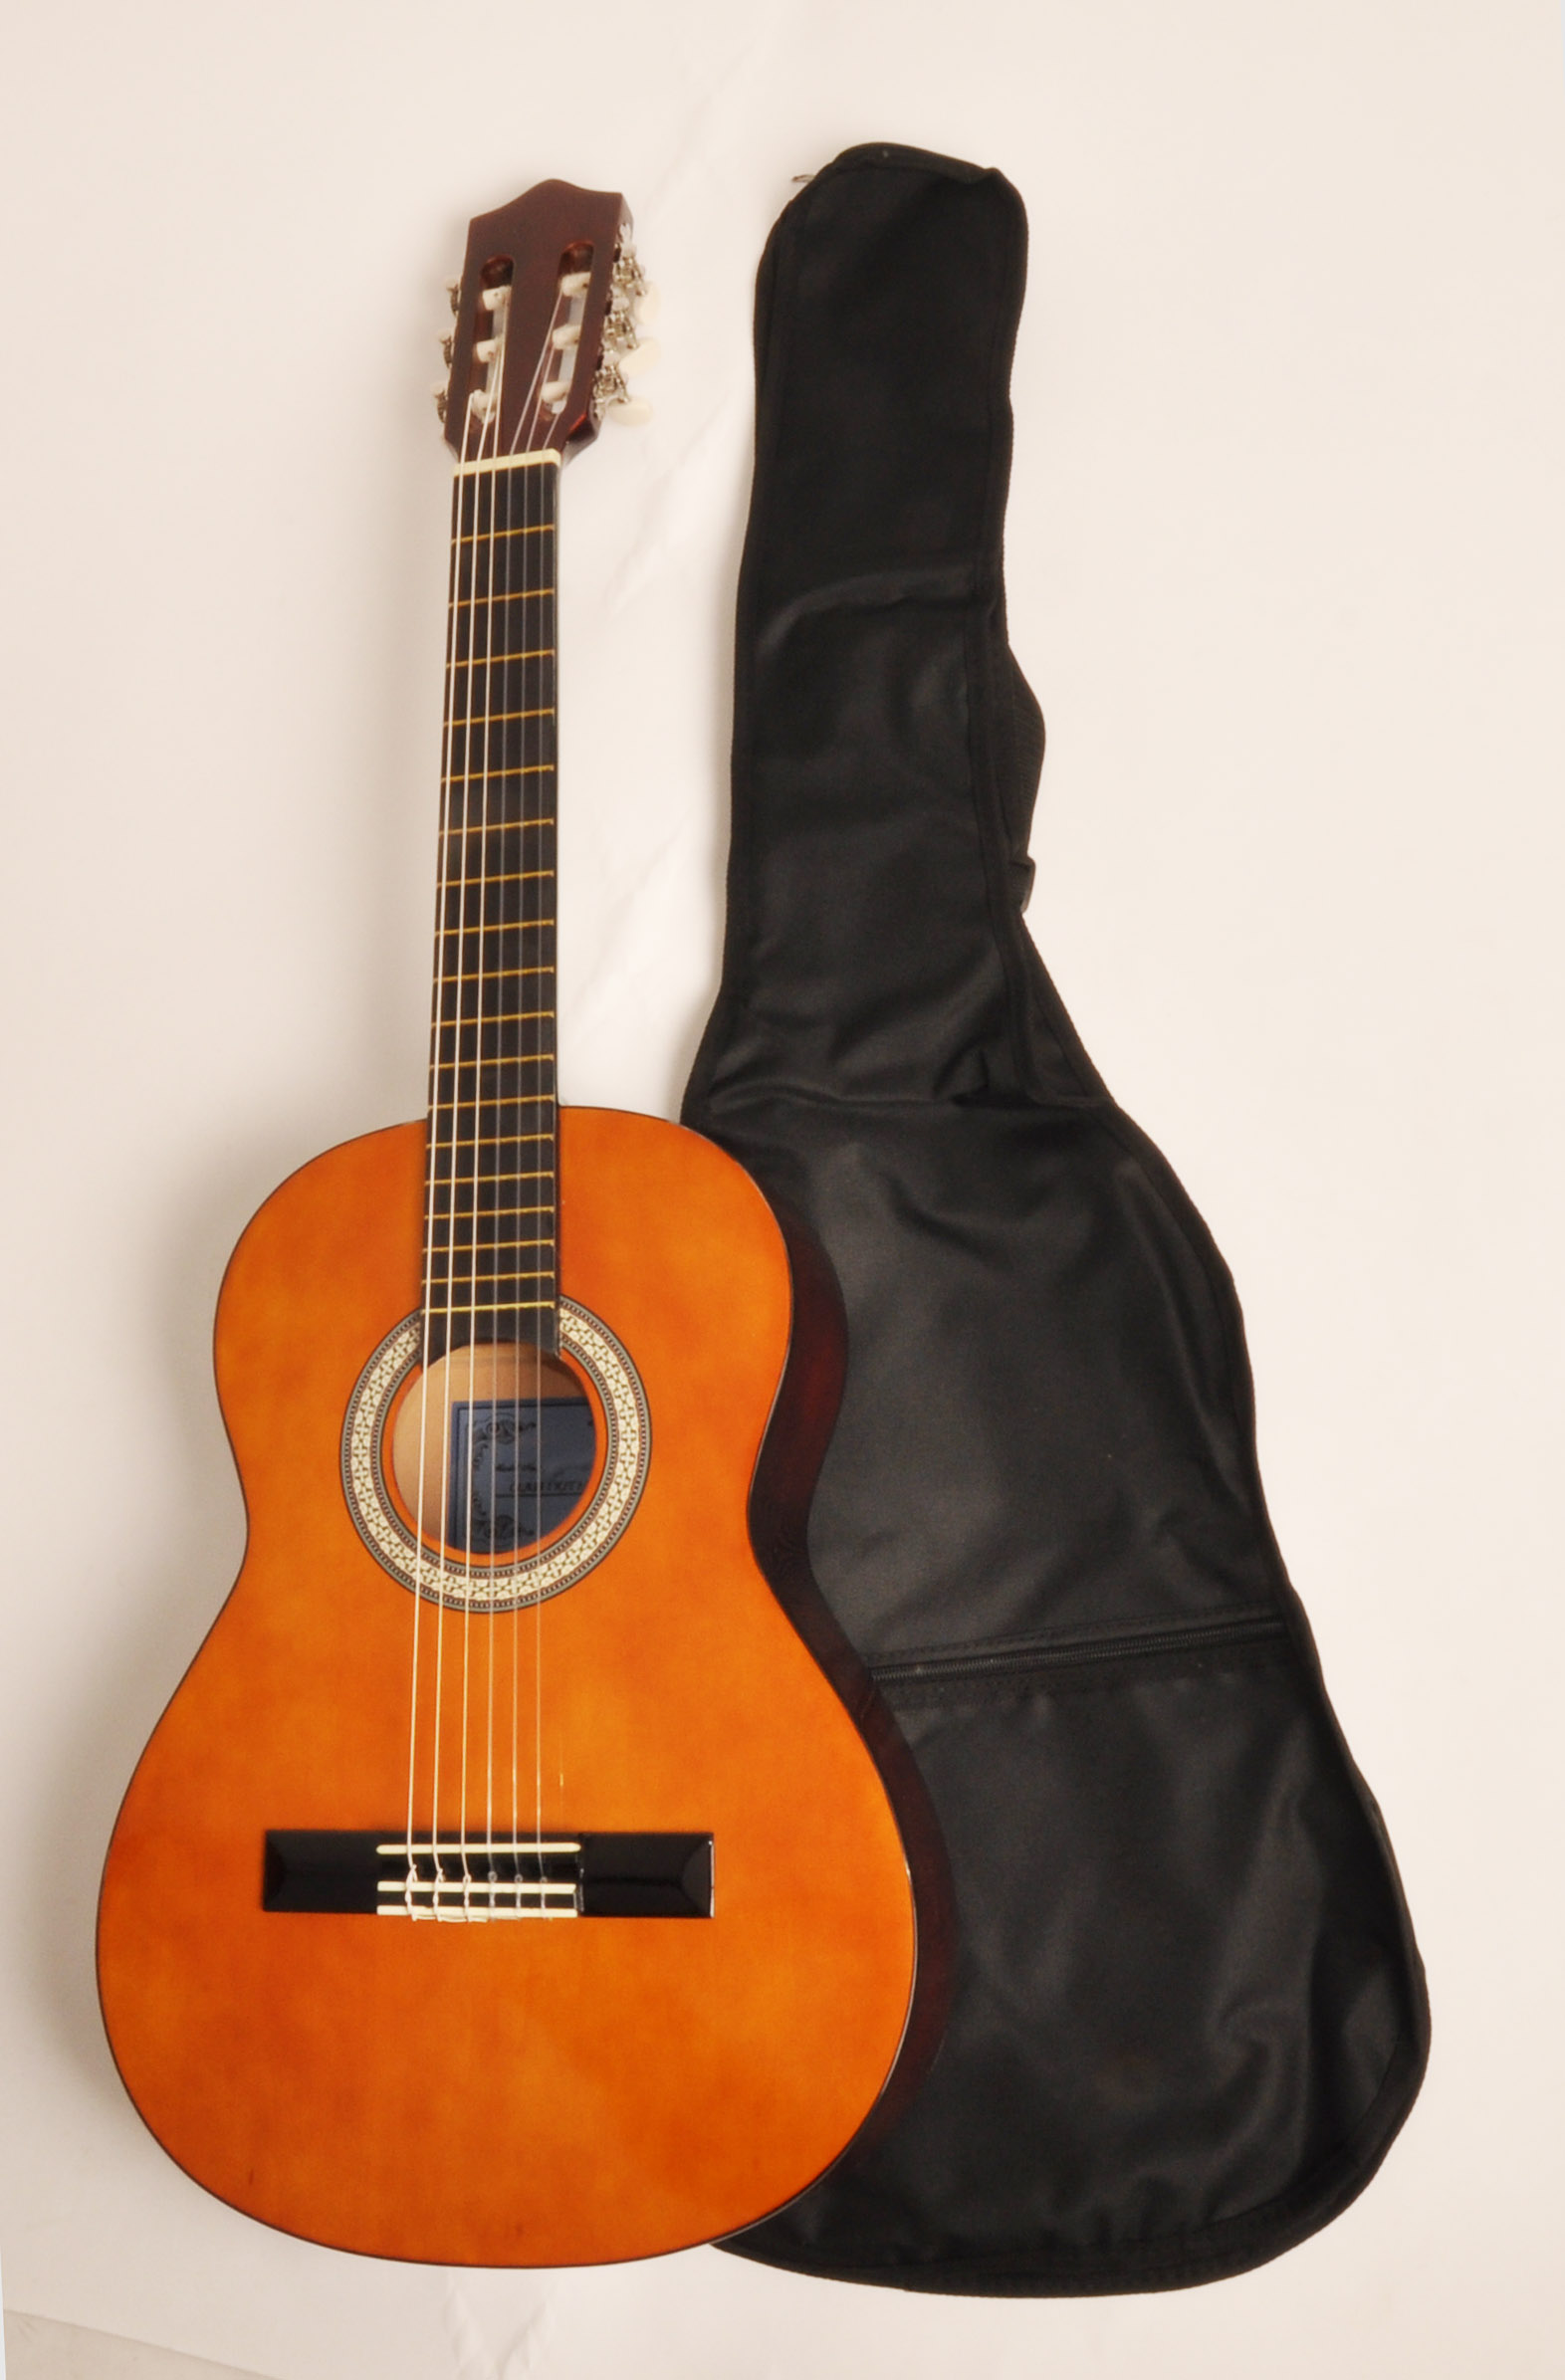 Beginner Classical Acoustic Guitar 3/4 Size (36 inch) w/Carry Bag SX Guitars Class Kit 3/4 Natural